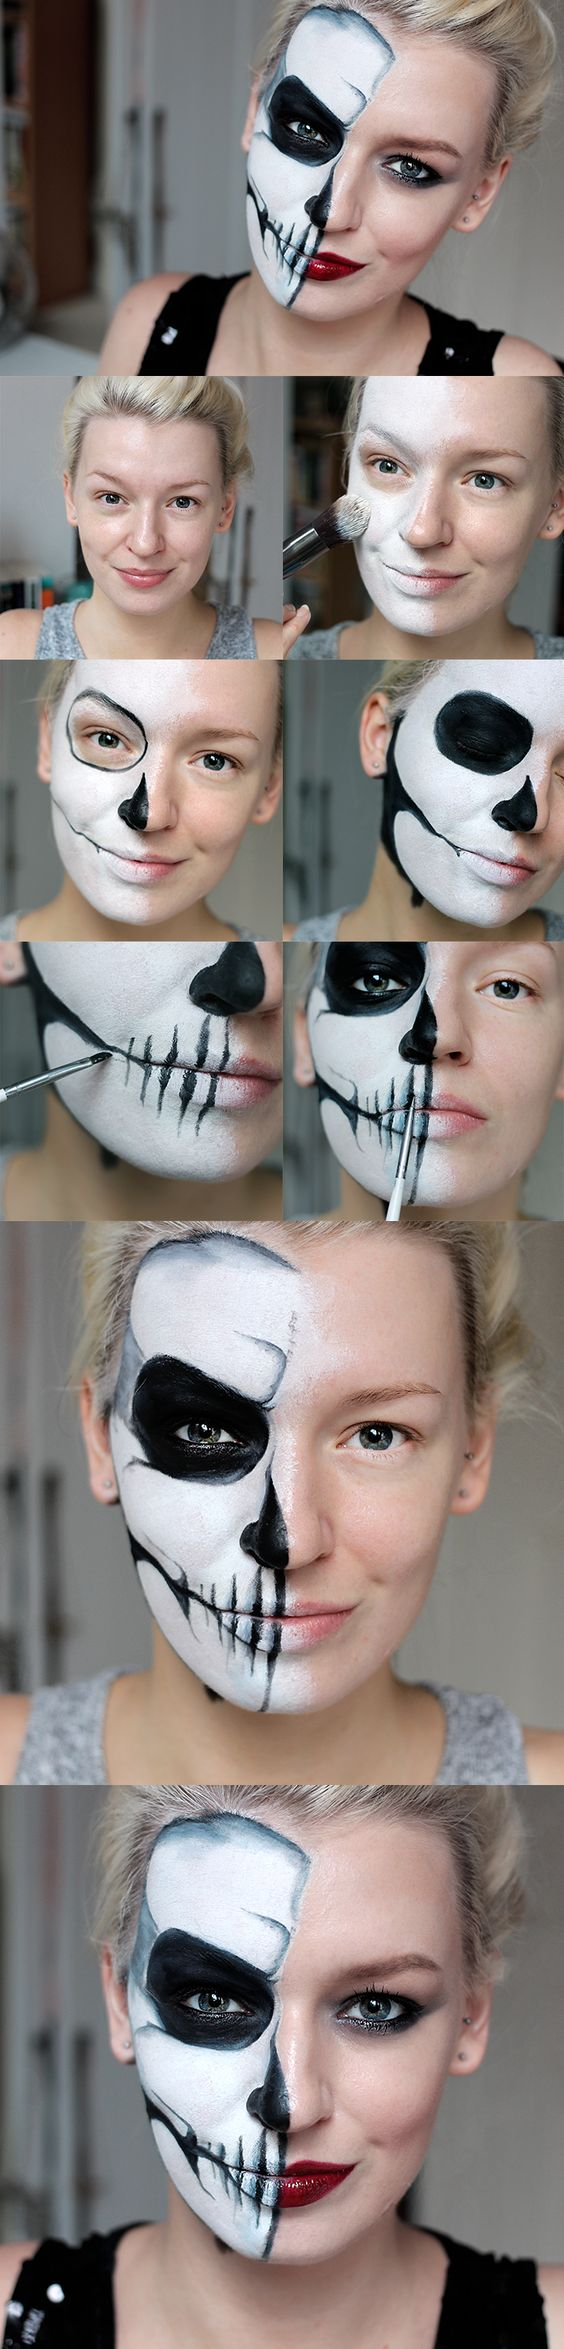 Halloween Simple Half Skull Glam Make-up Tutorial by zoe newlove: